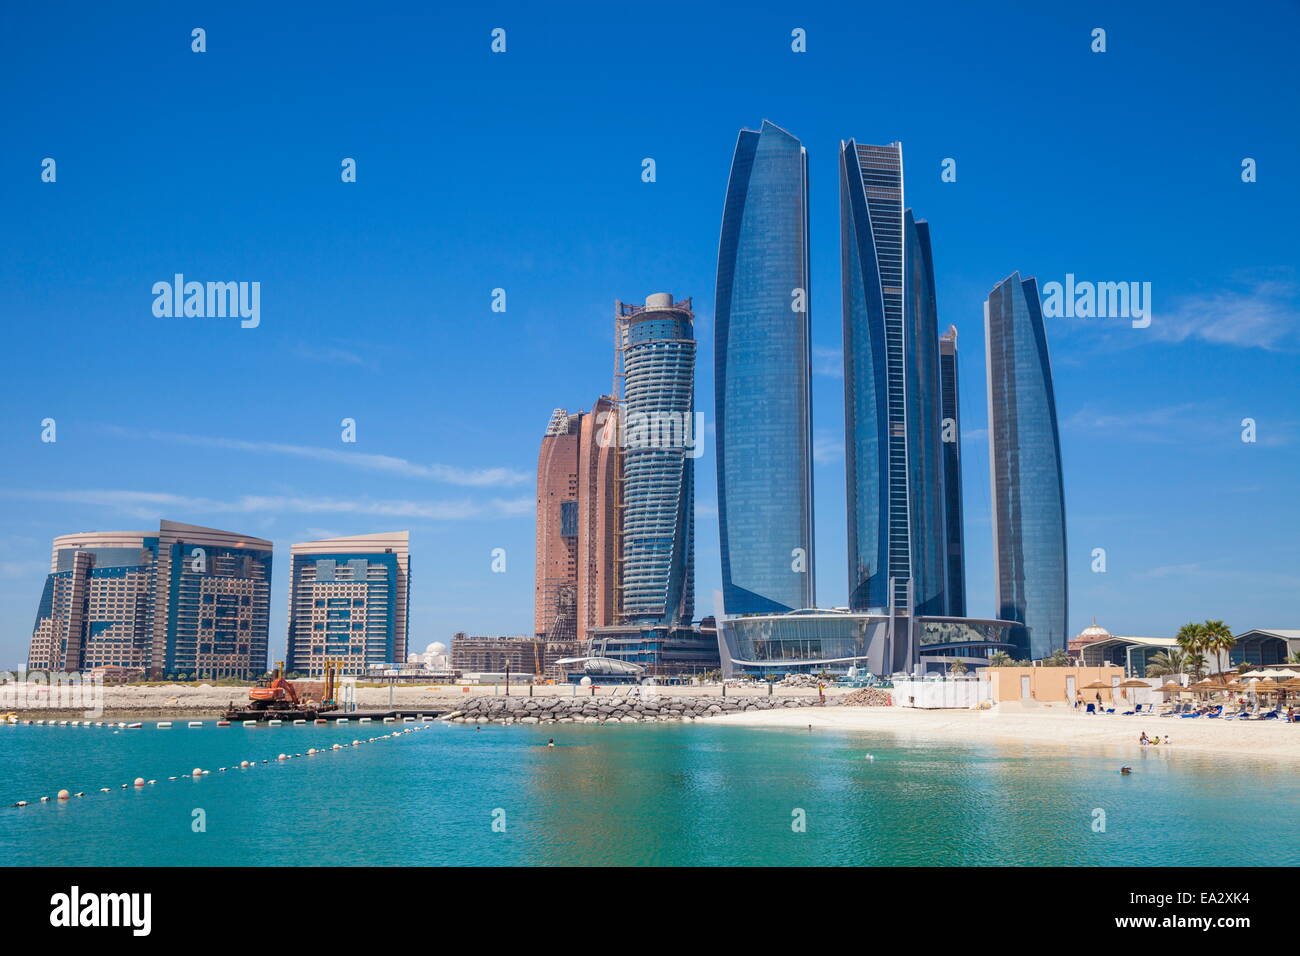 Etihad Towers, Abu Dhabi, United Arab Emirates, Middle East Stock Photo